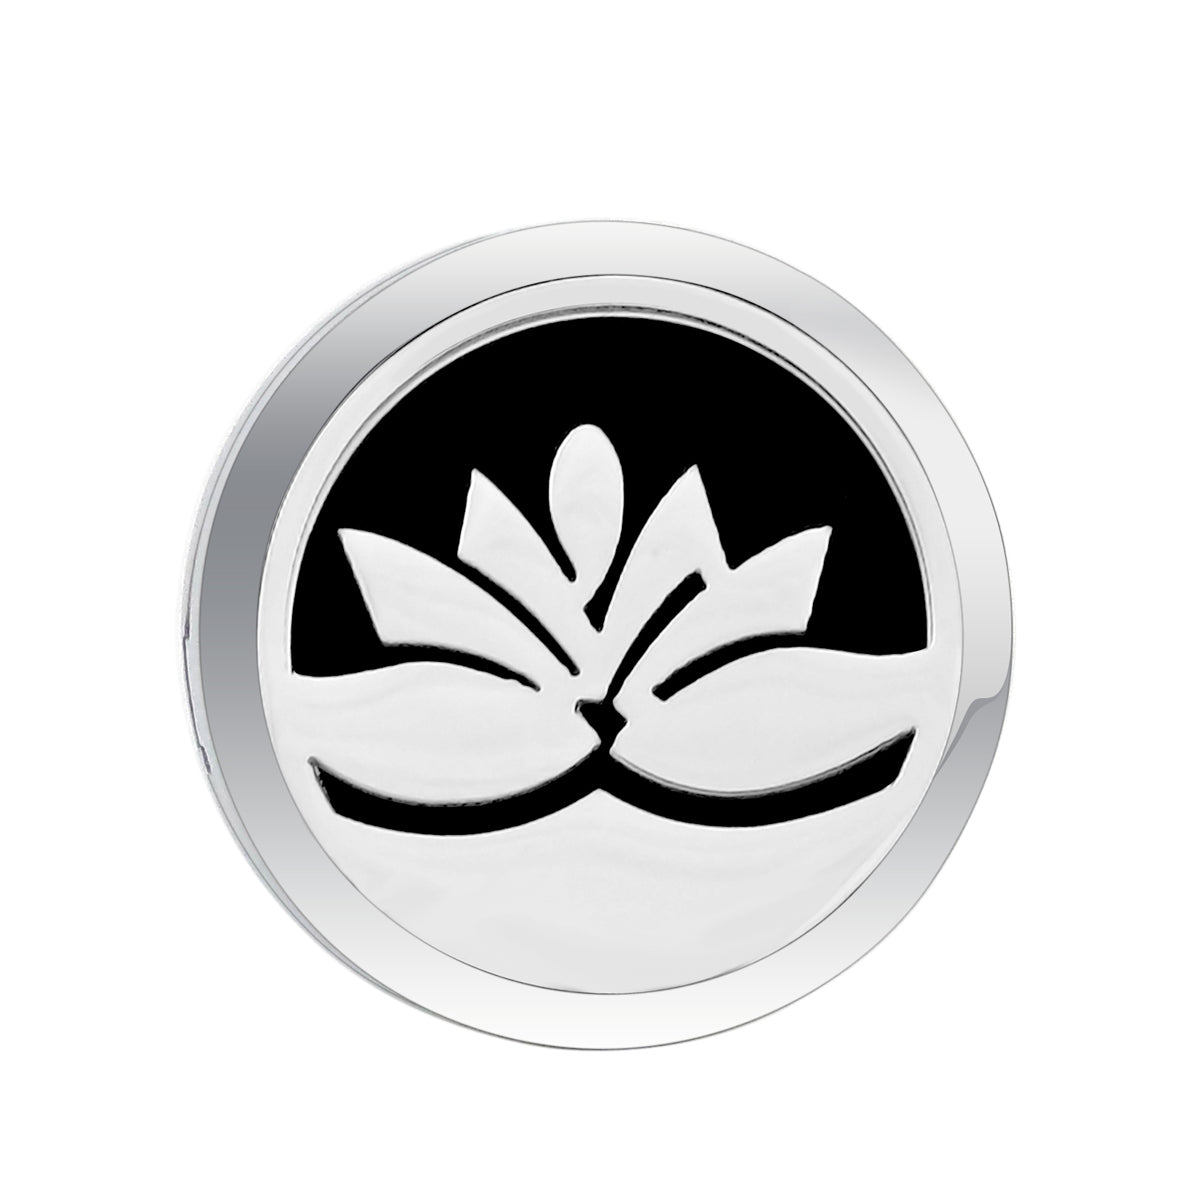 Love & Light Essence. Car Essential Oil Diffuser Jewelry Lotus Flower 2 Front View with Black Pad